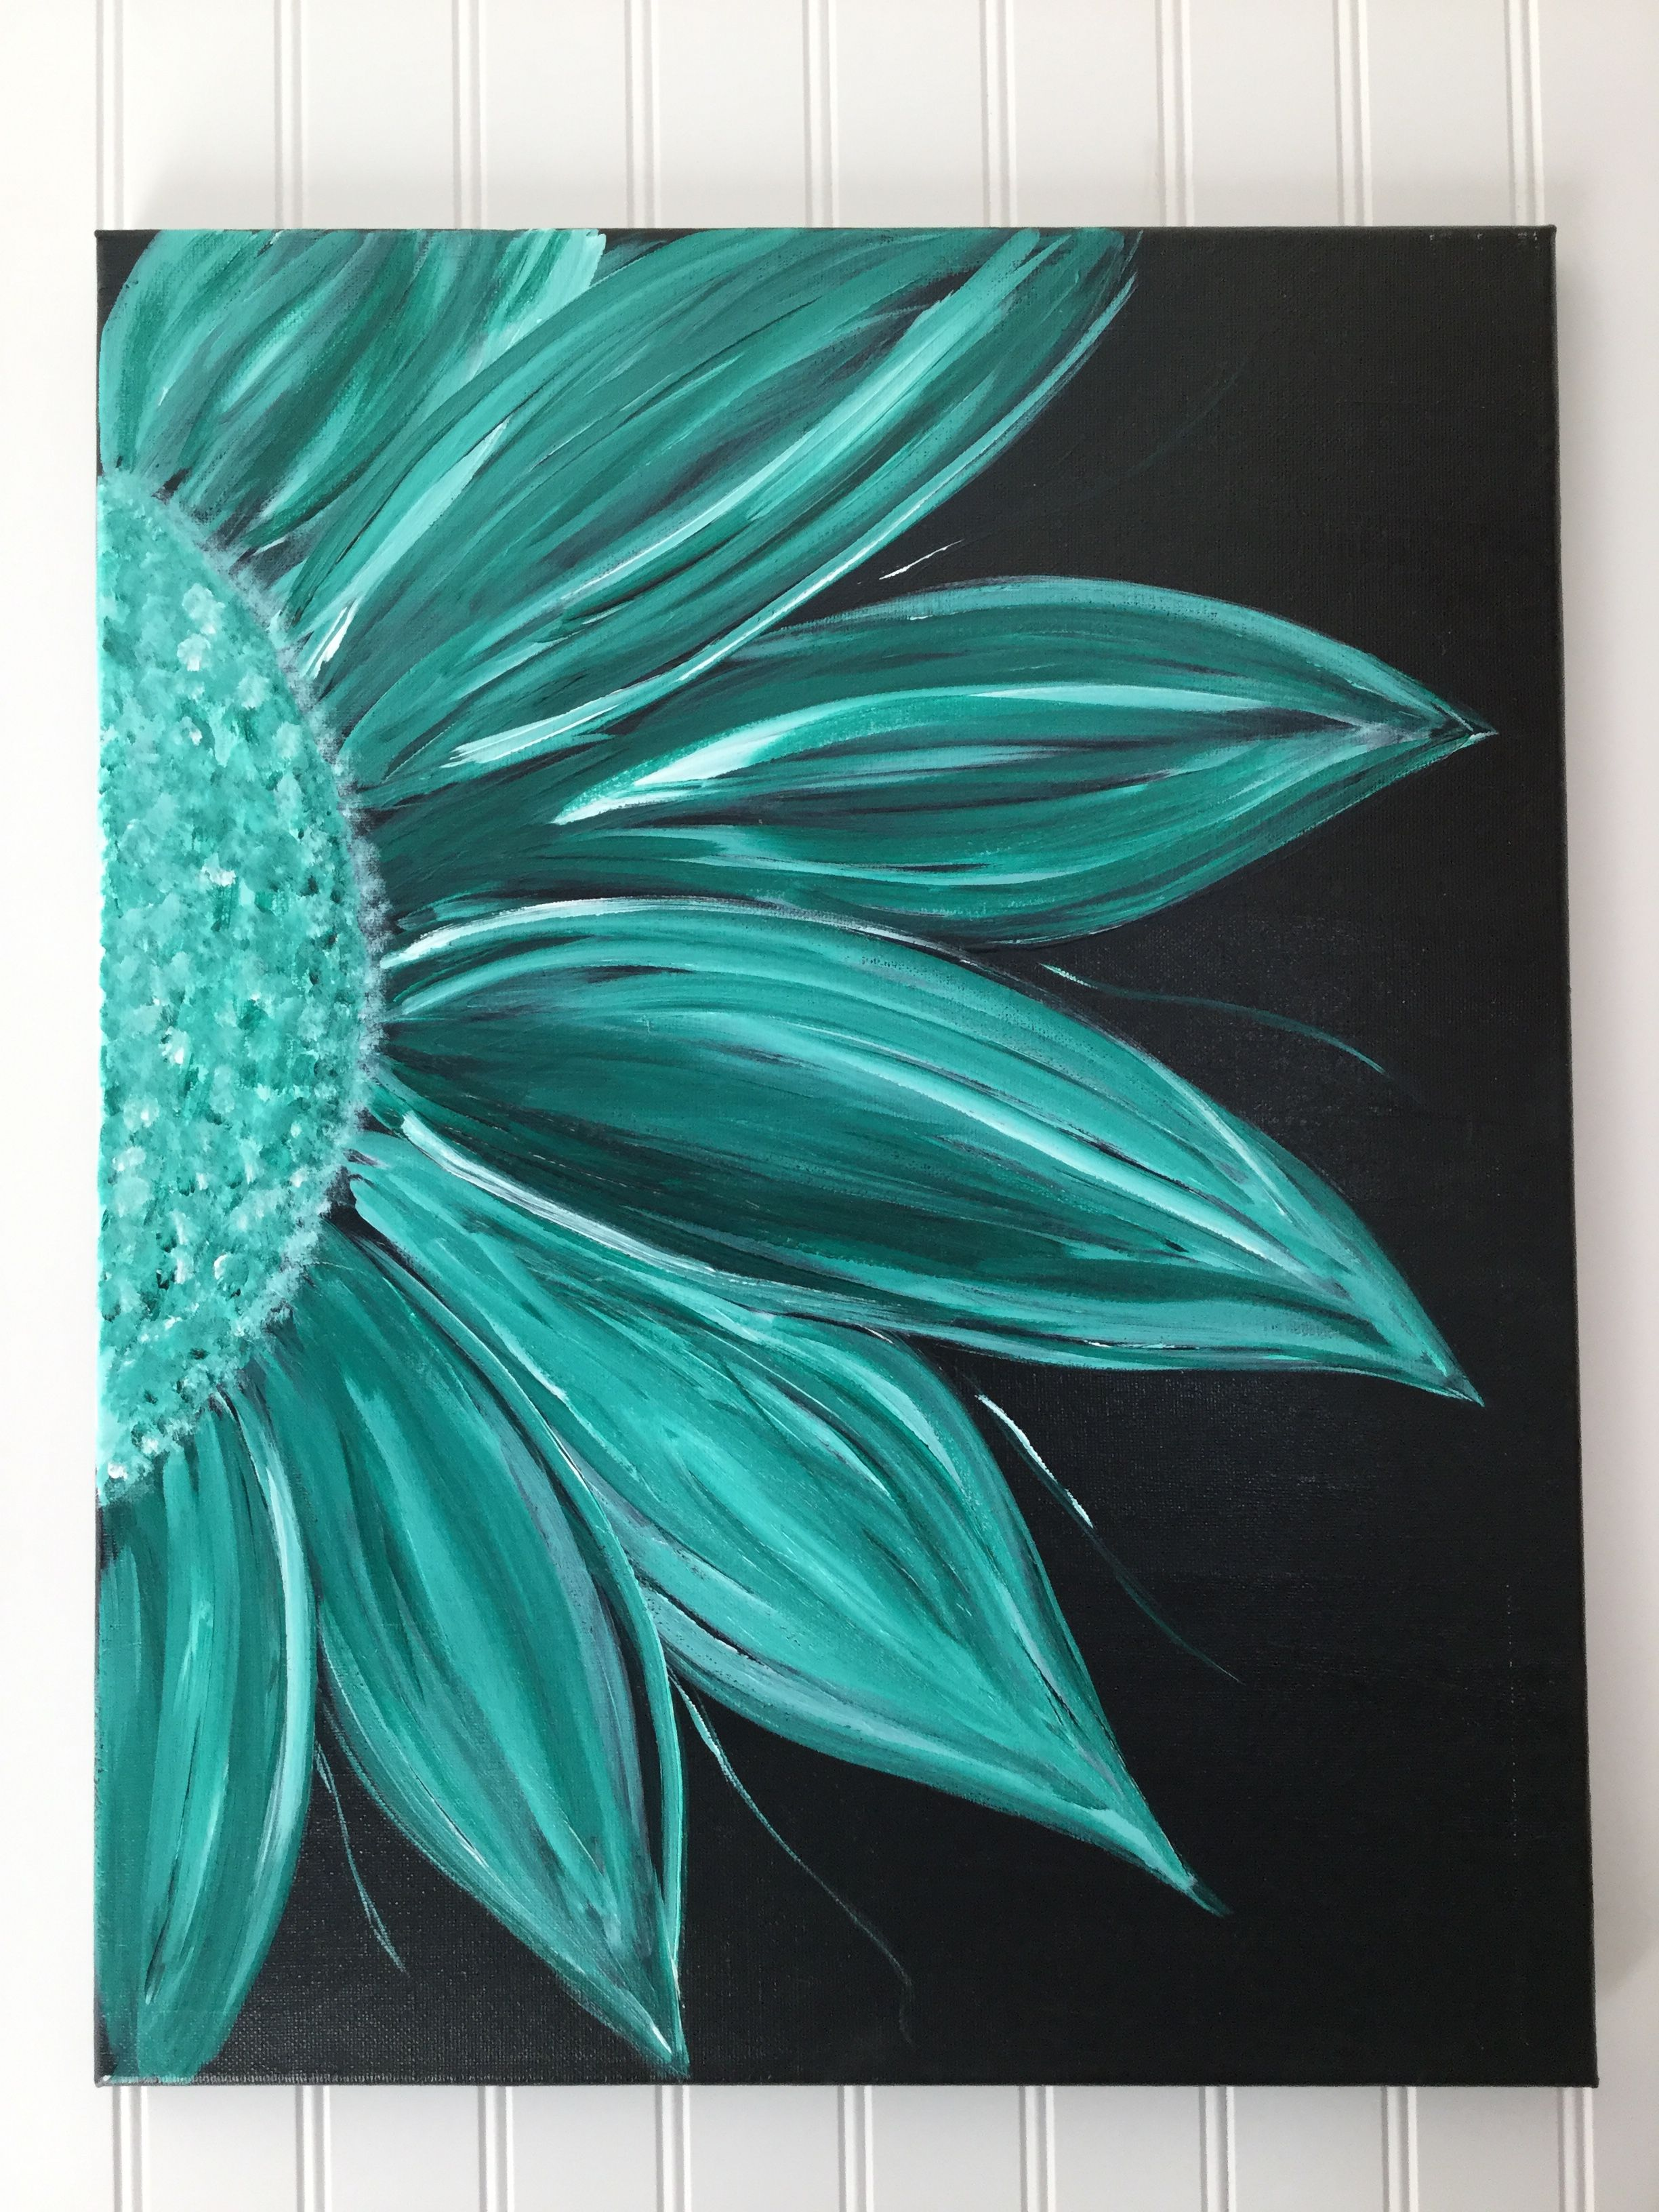 Acrylic Flower Painting On Black Background By Mjl Canvas Painting